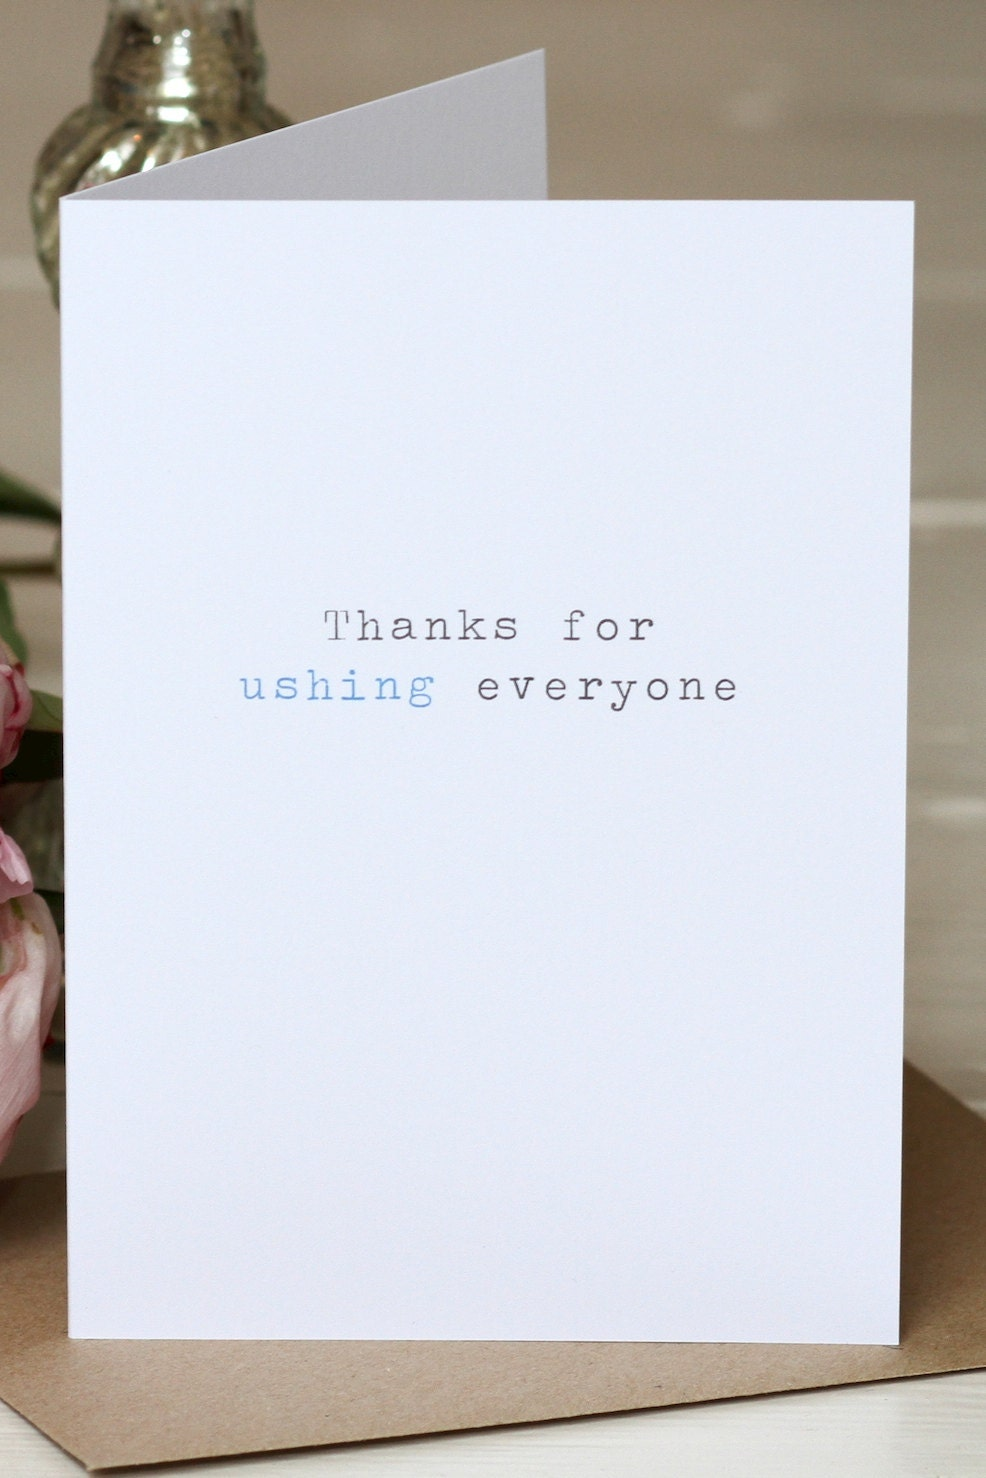 Wedding thank you card 39 thanks for ushing 39 for Tidy buy wedding dresses